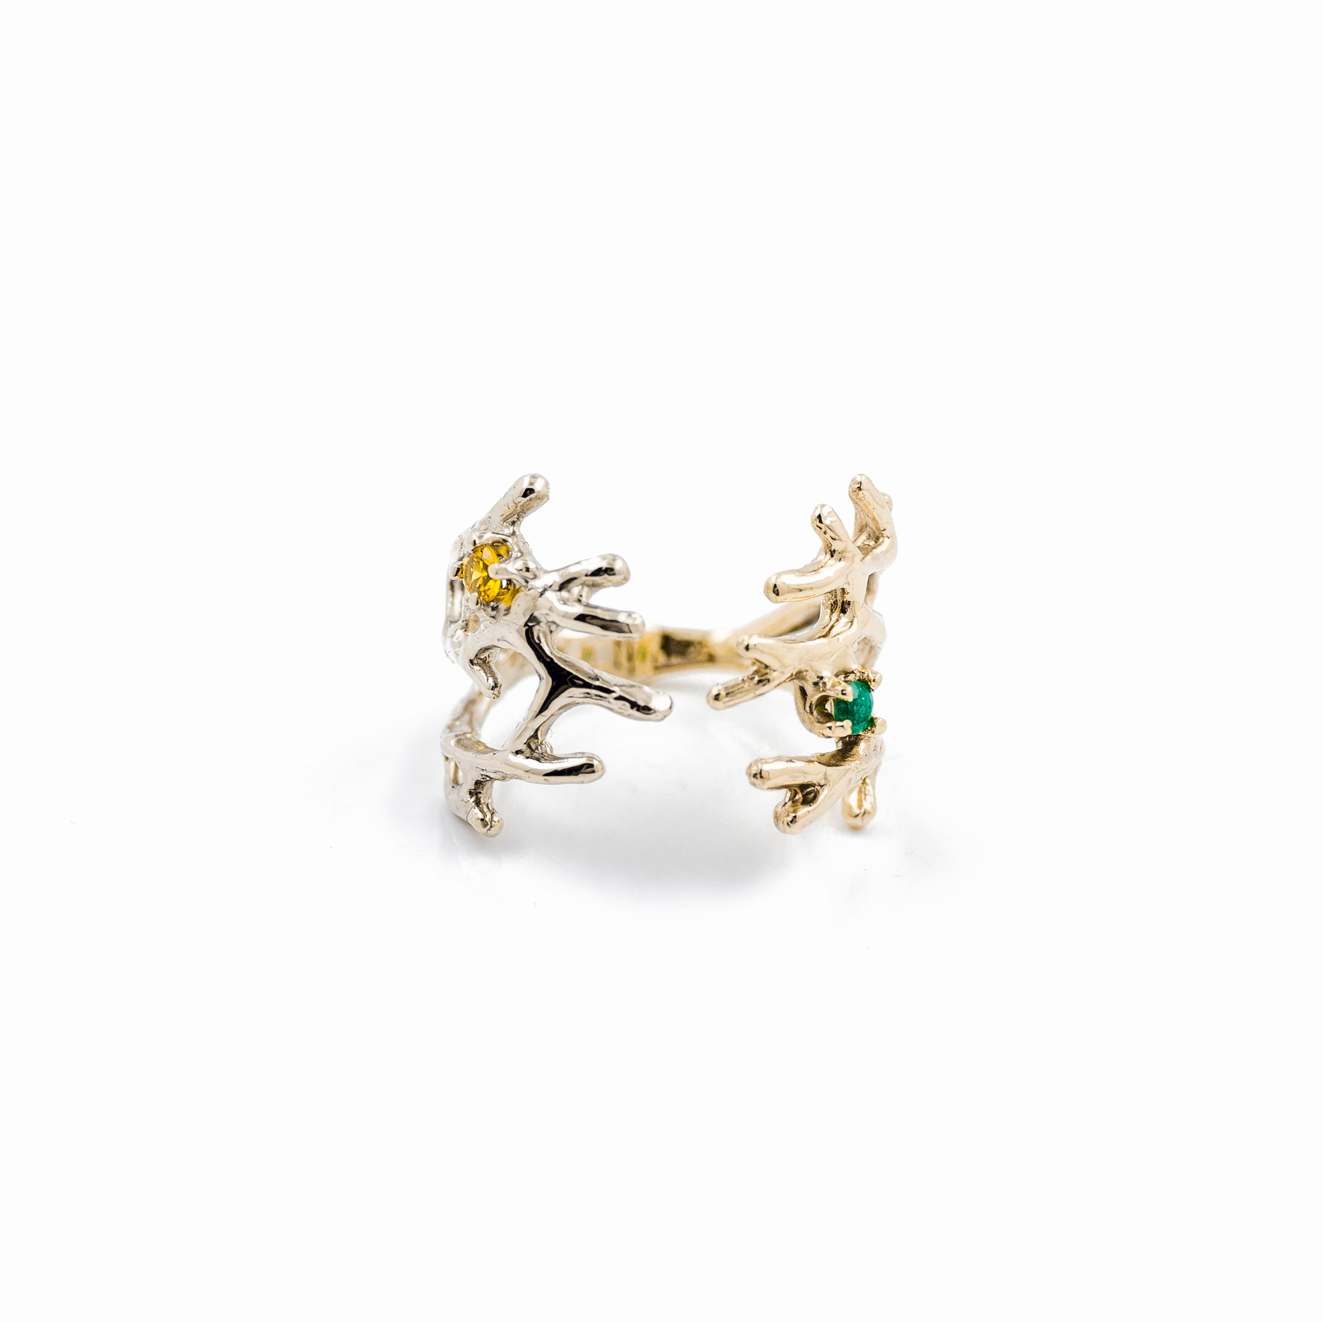 Dendrite Ring | 9ct yellow gold, 9ct white gold, emerald, yellow sapphire.